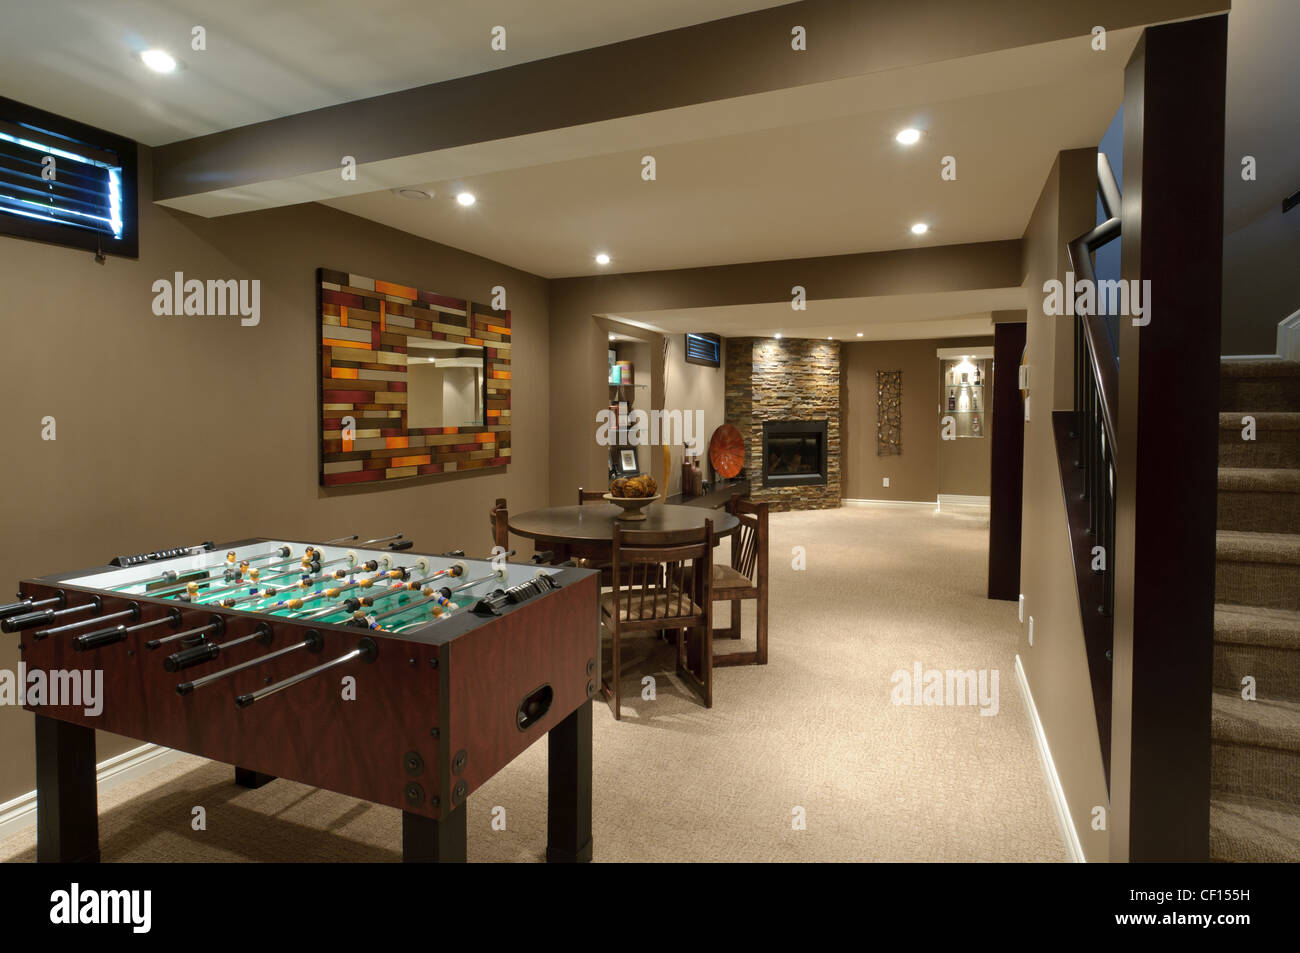 Superieur Basement In A Luxury Residential Home With Foosball And Card Tables.